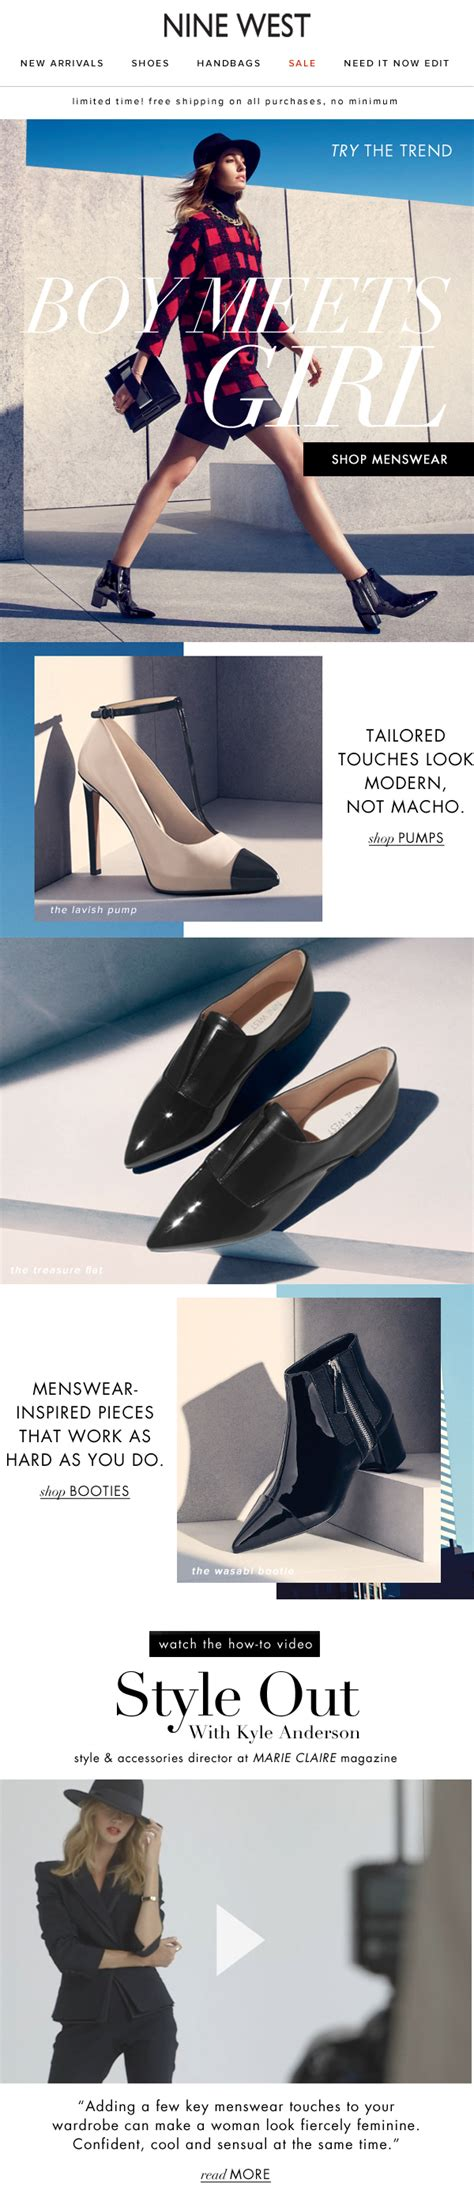 skillfeed graphic design layout bootc ninewest mosborne email layout shoes fall internet